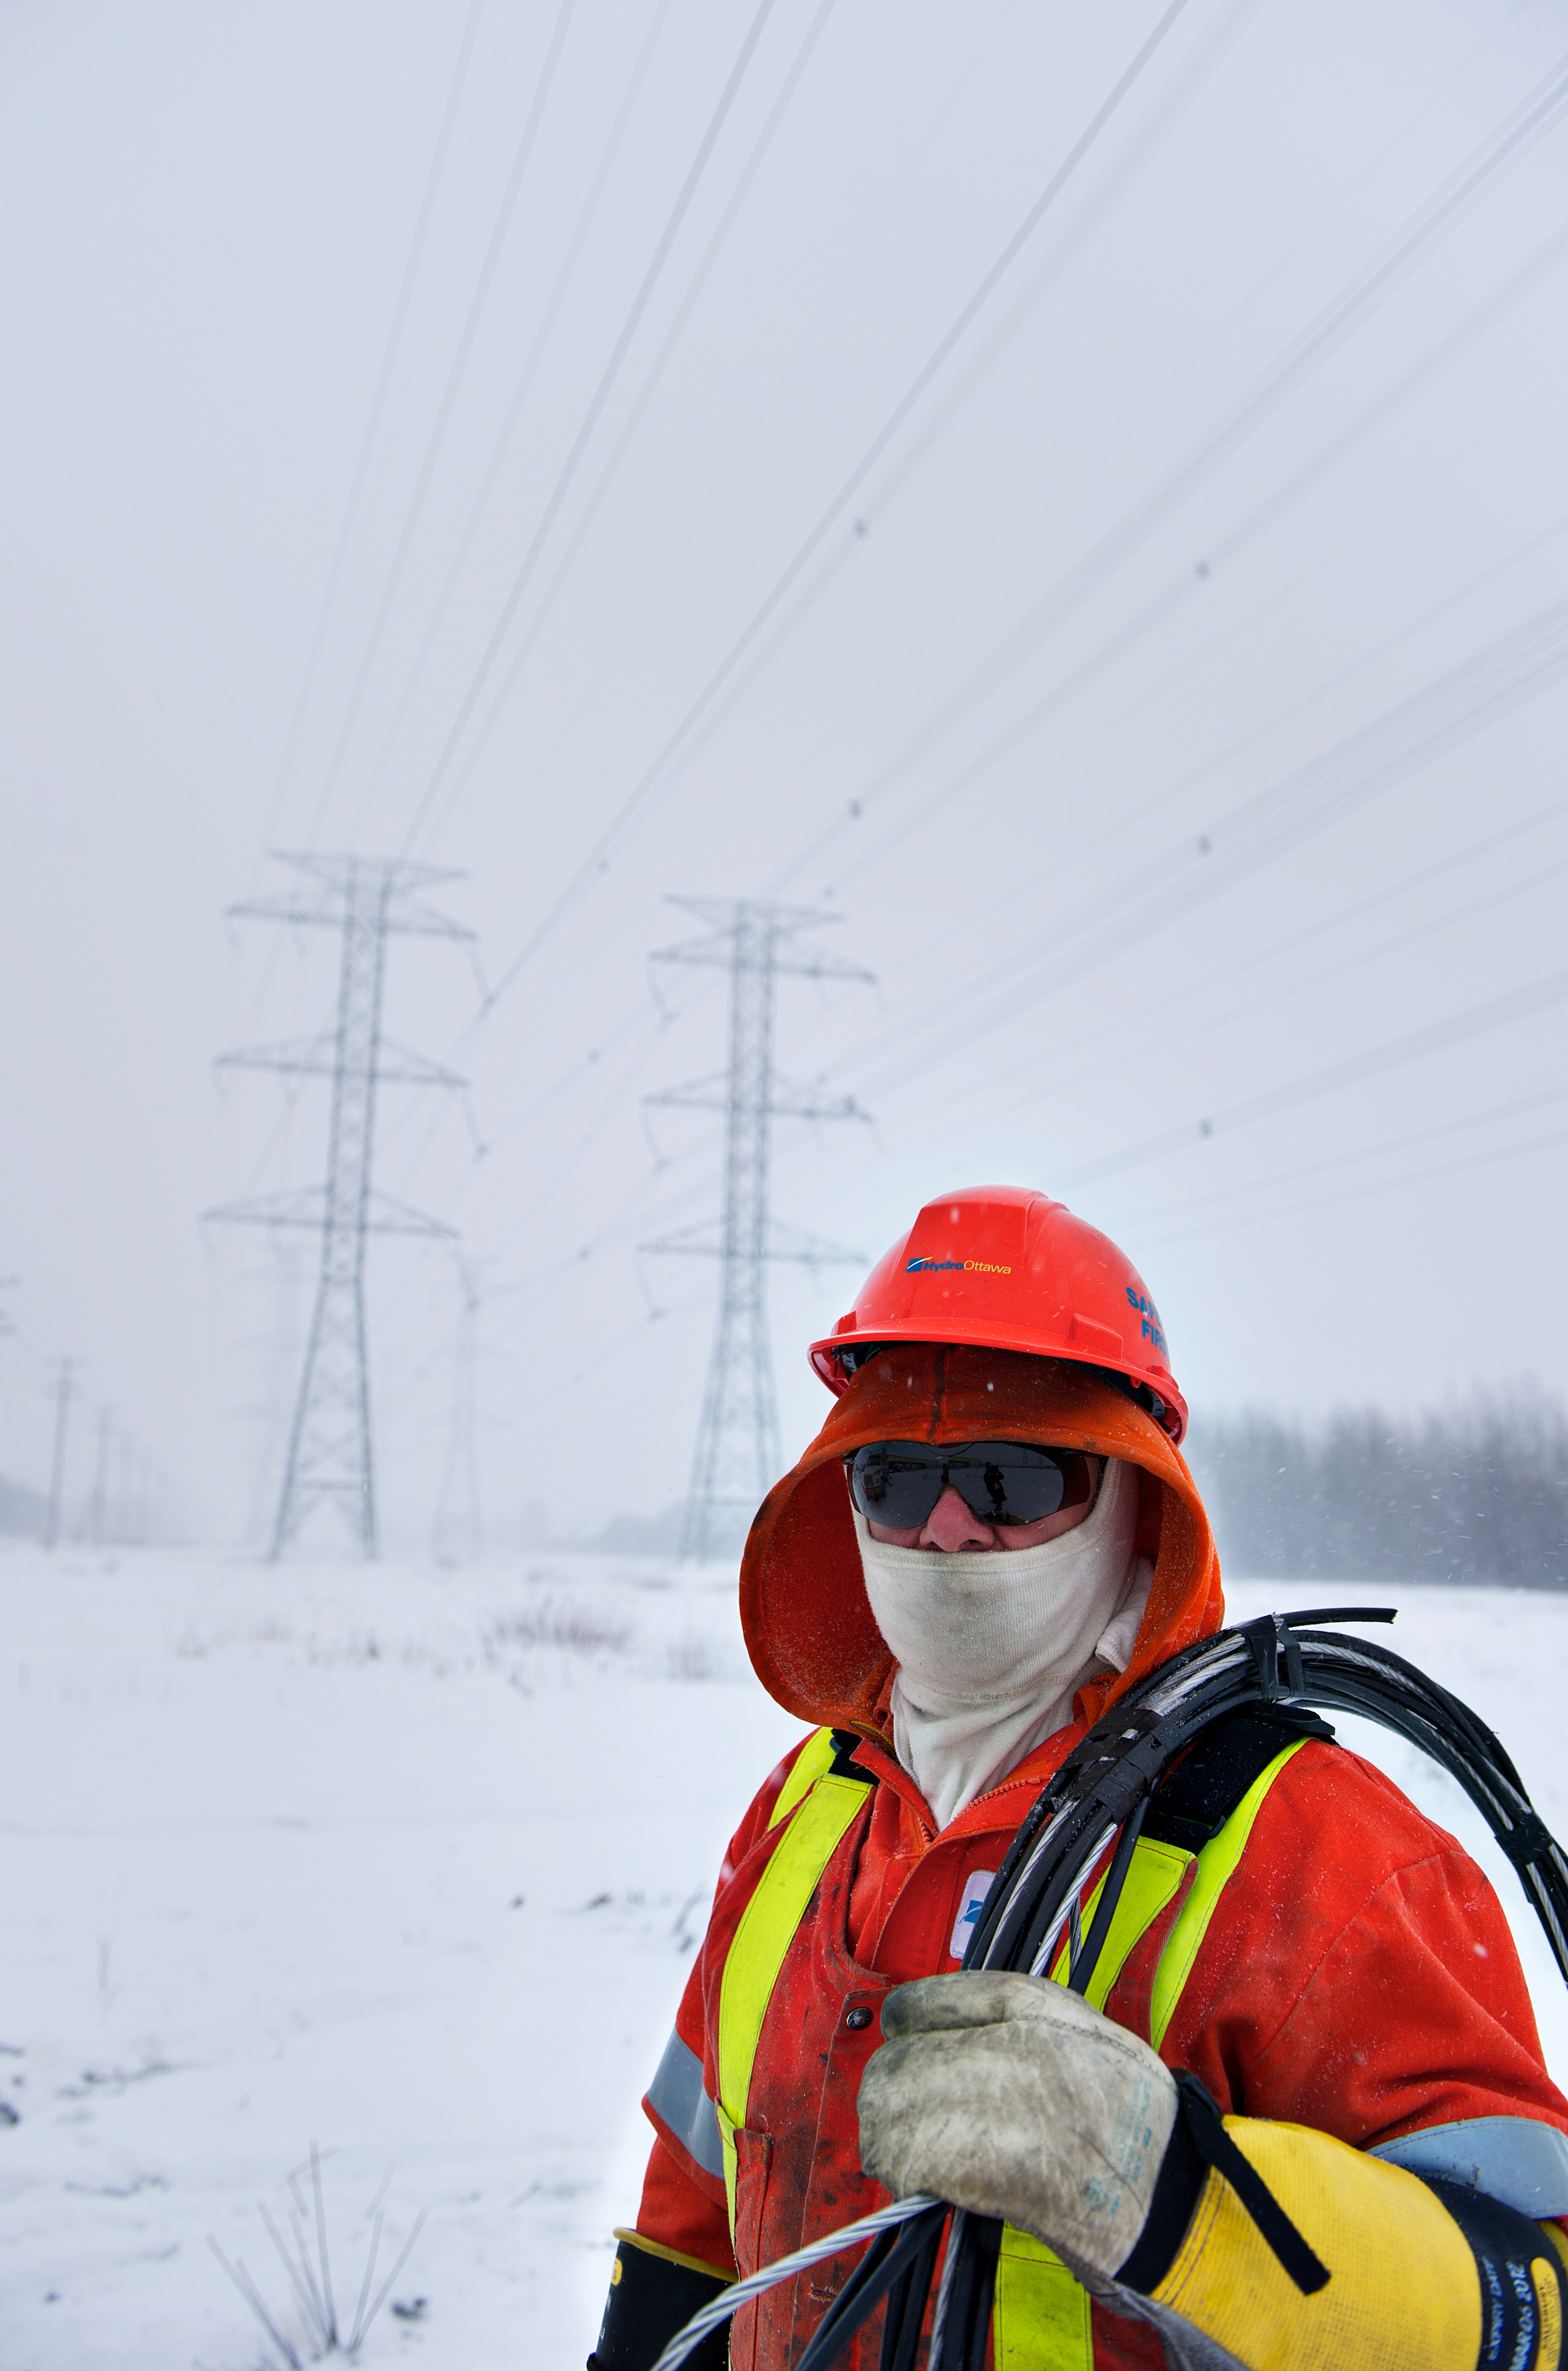 Outages Safety At Home Outside The Hydro When Working With Electricity Always A Ottawa Power Line Maintainer On Cold Winter Day